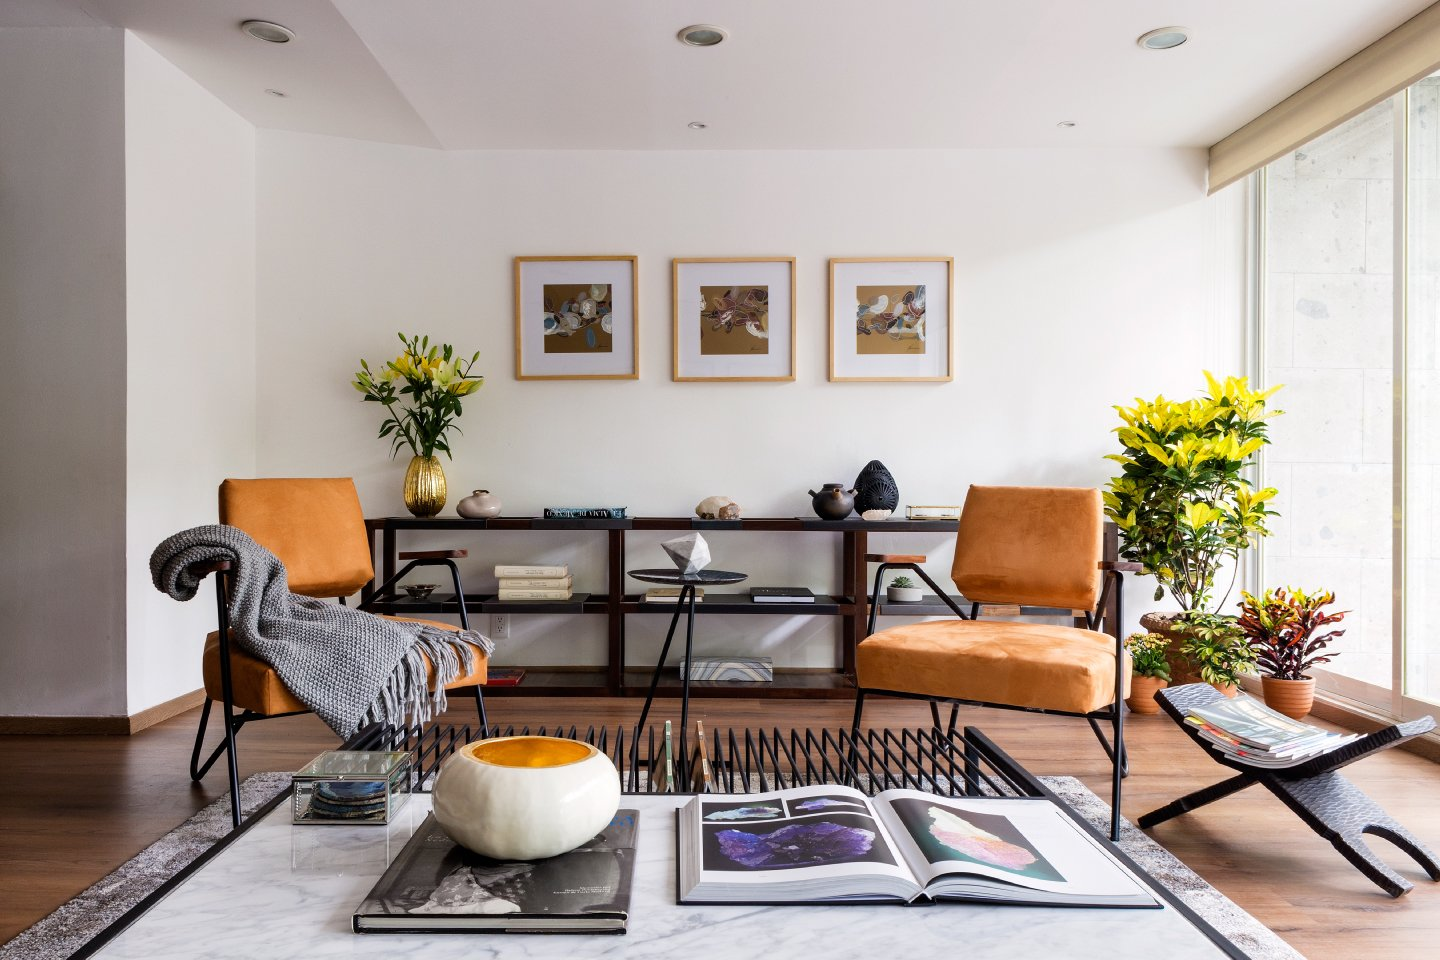 Tagged: Living Room, Recessed Lighting, Bookcase, Dark Hardwood Floor, End Tables, Chair, and Rug Floor.  Best Photos from 7 Stylish Pads to Rent in Mexico City